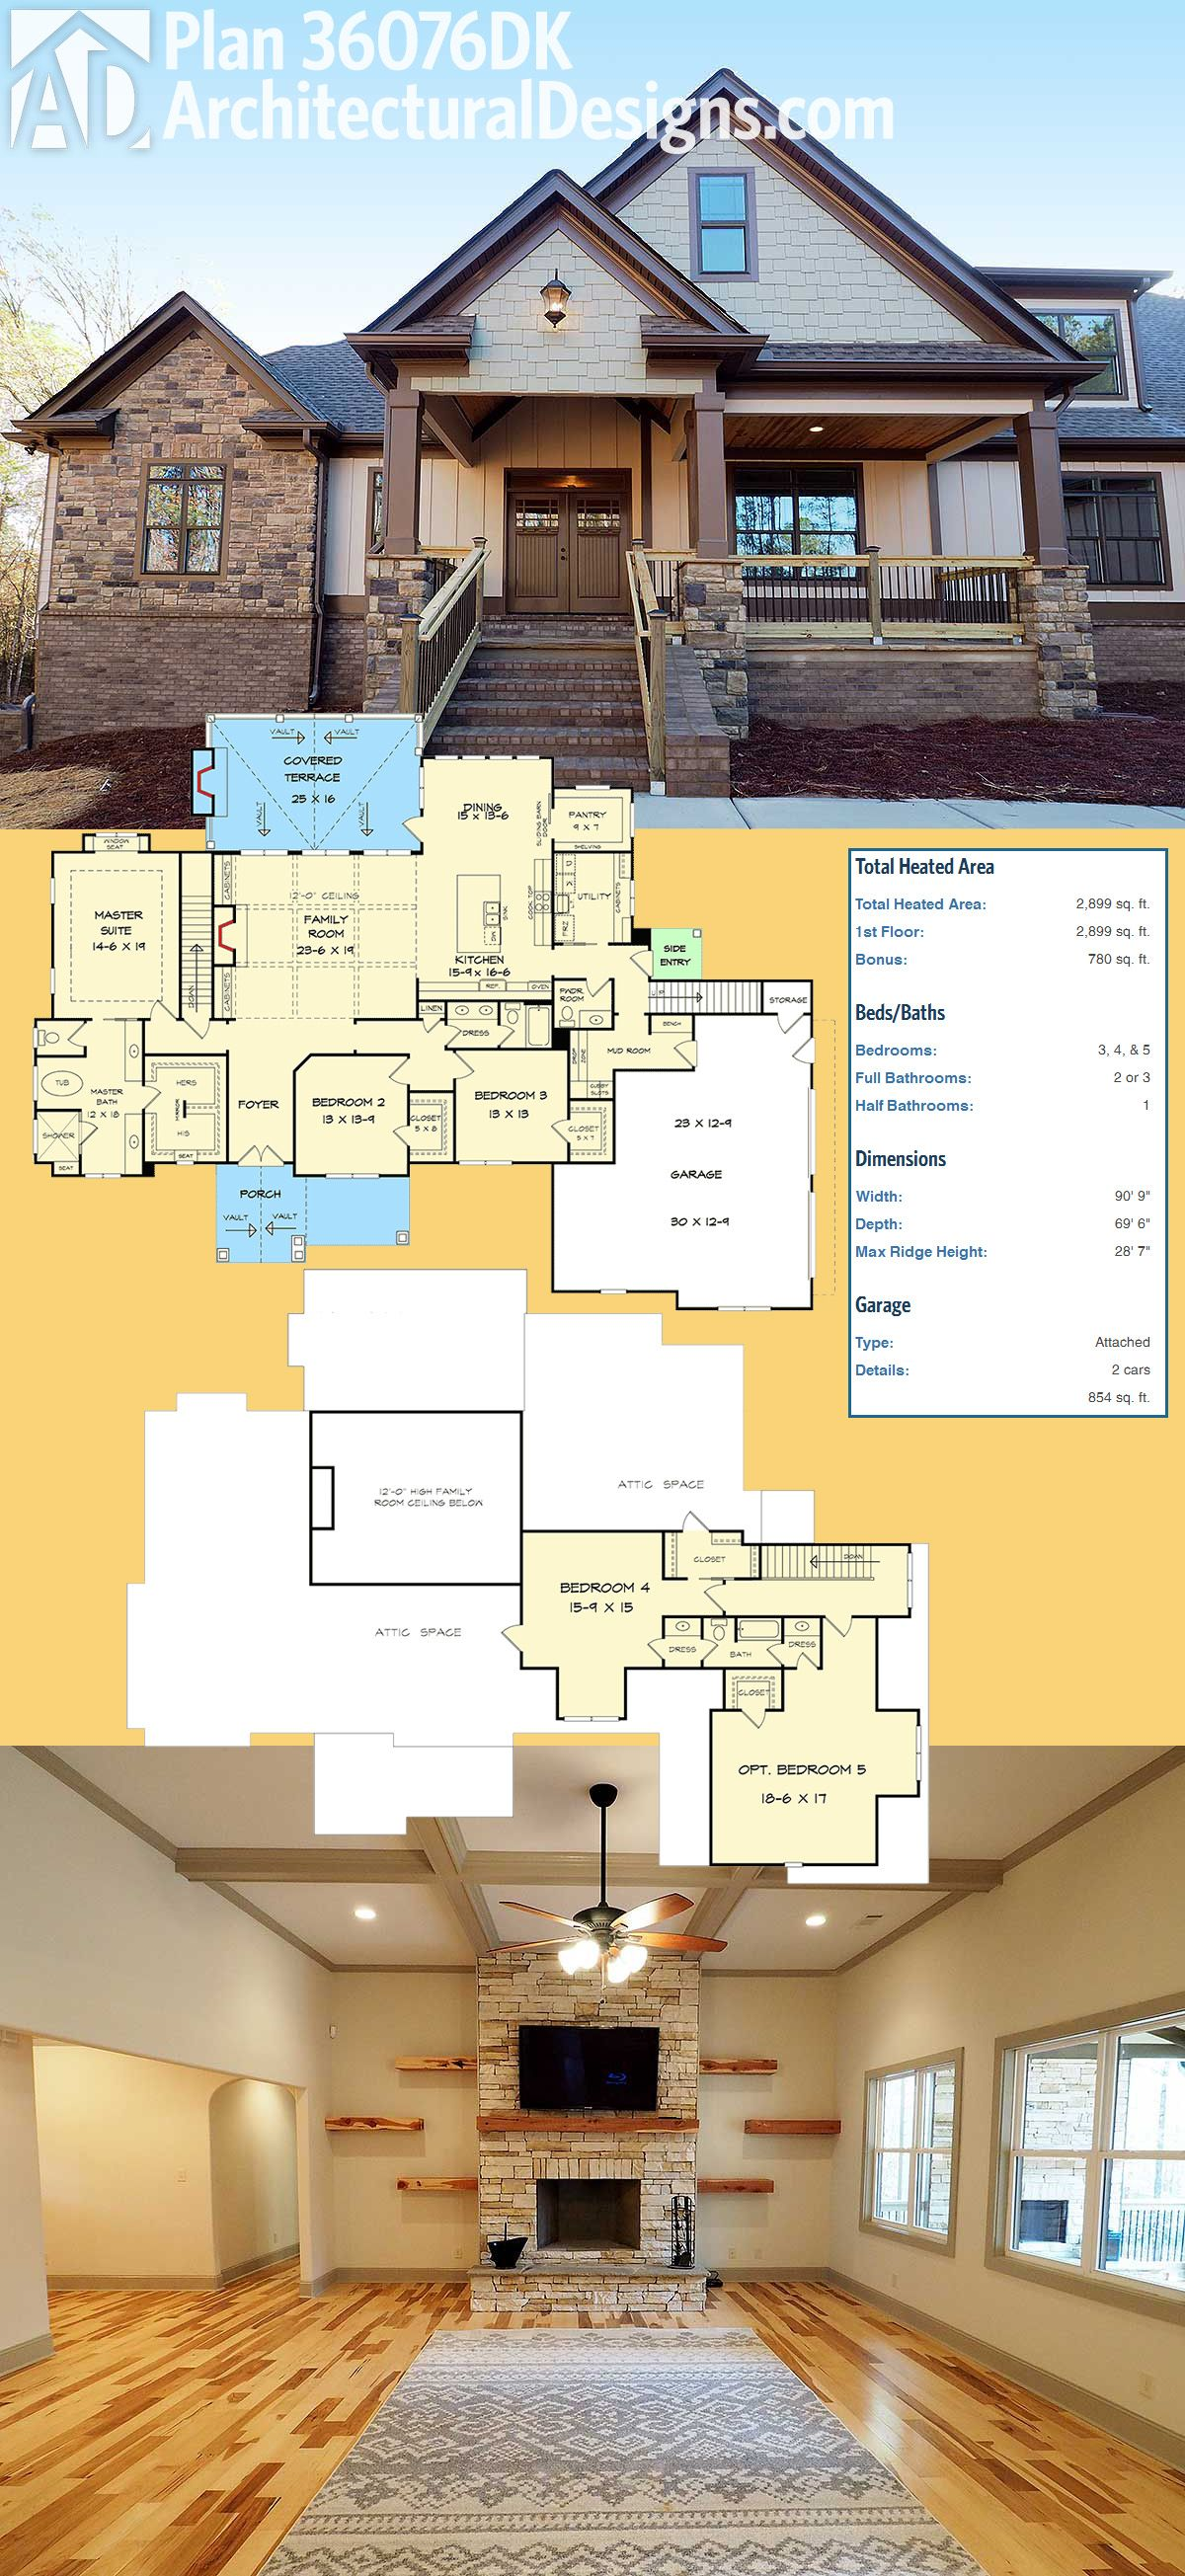 Introducing architectural designs house plan dk it gives you beds on the main floor and an open there is expansion space upstairs also striking craftsman with option for cabins rh pinterest